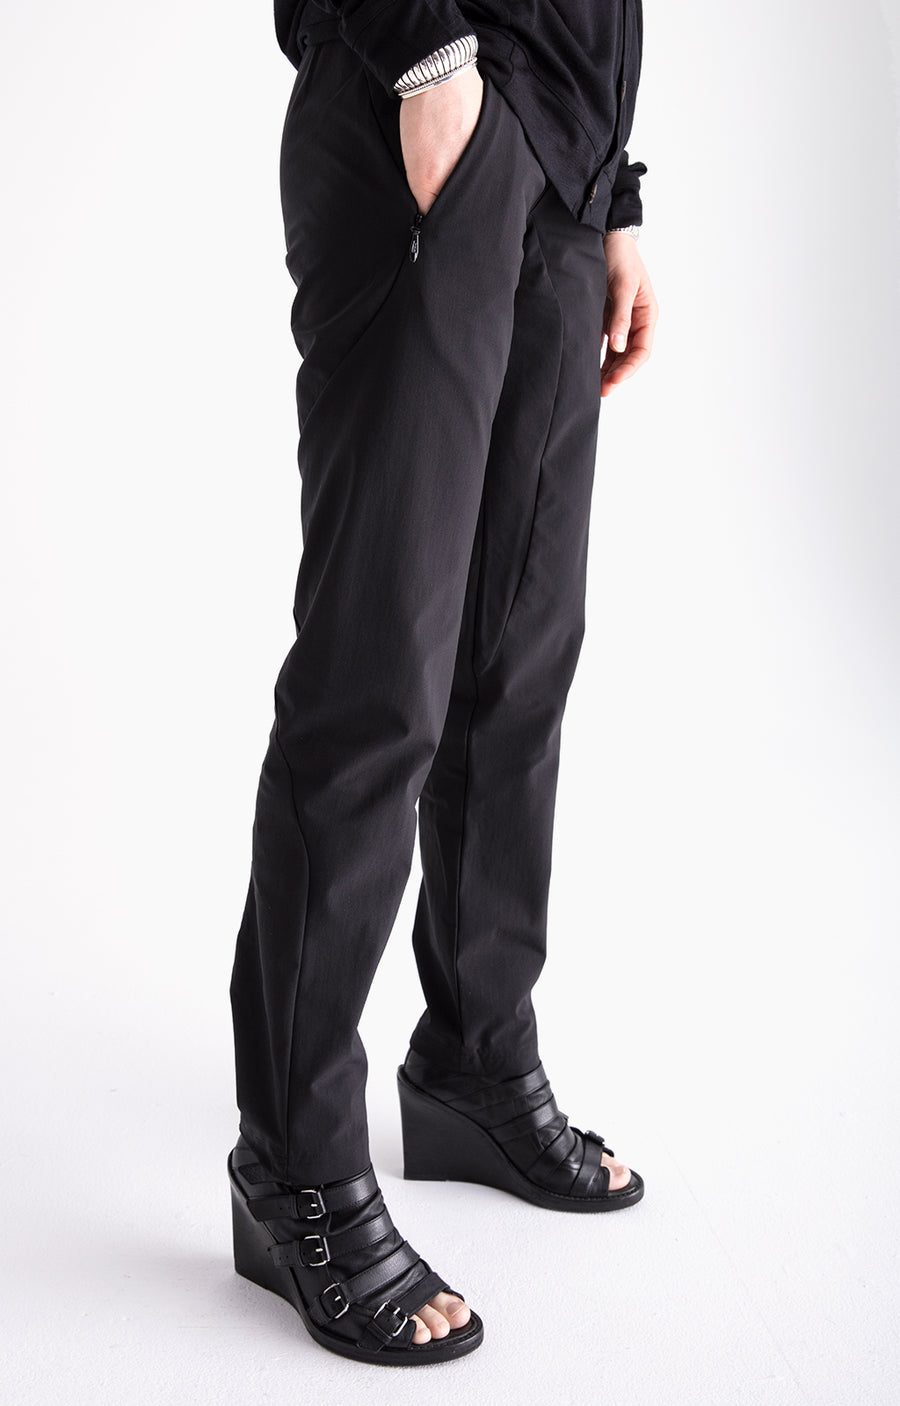 Minimalist - A Beautiful Slim-Fit Tech Travel Pant Black